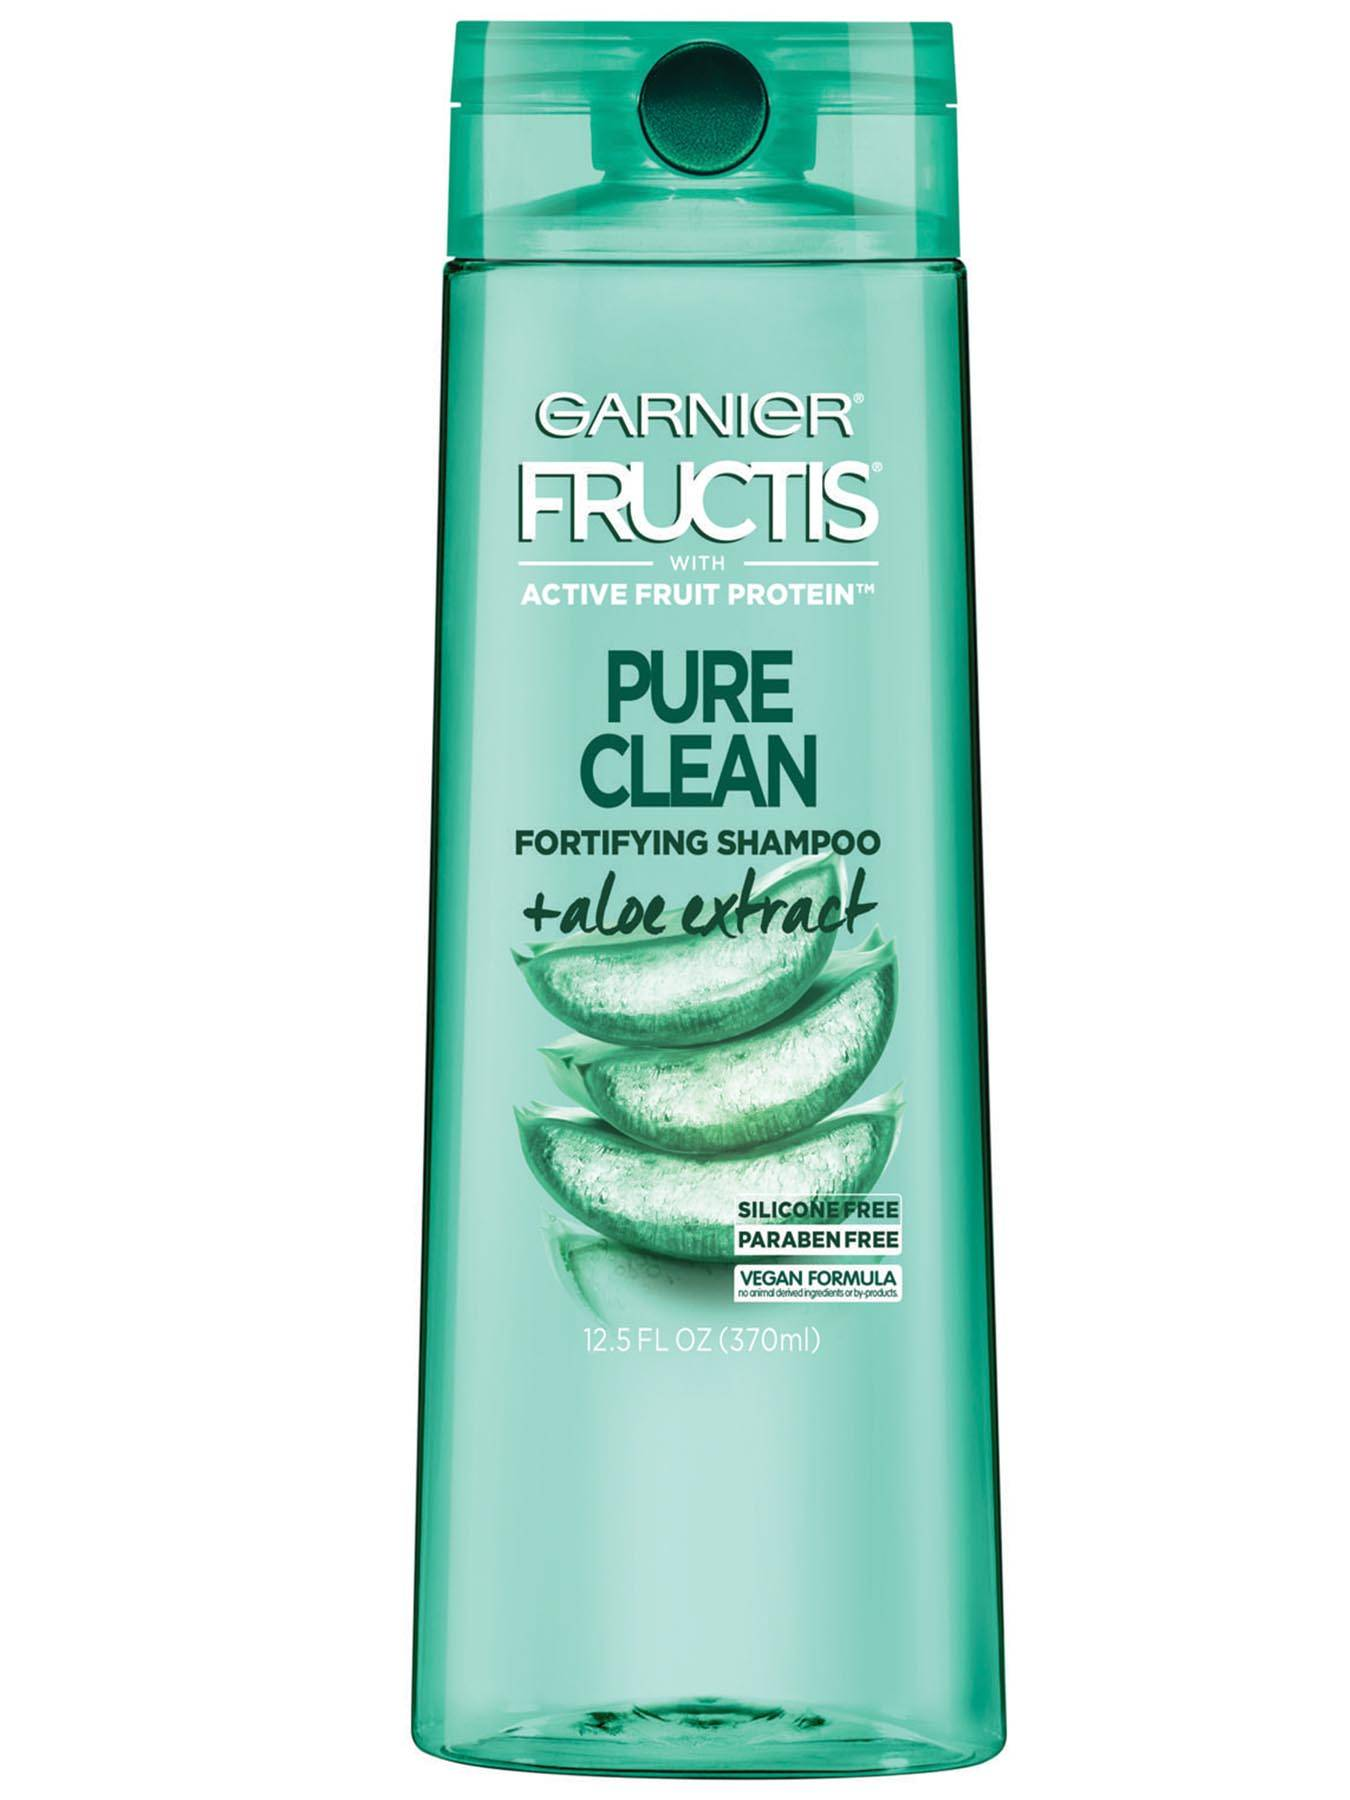 Pure Clean Shampoo Hair Care Product Garnier Fructis